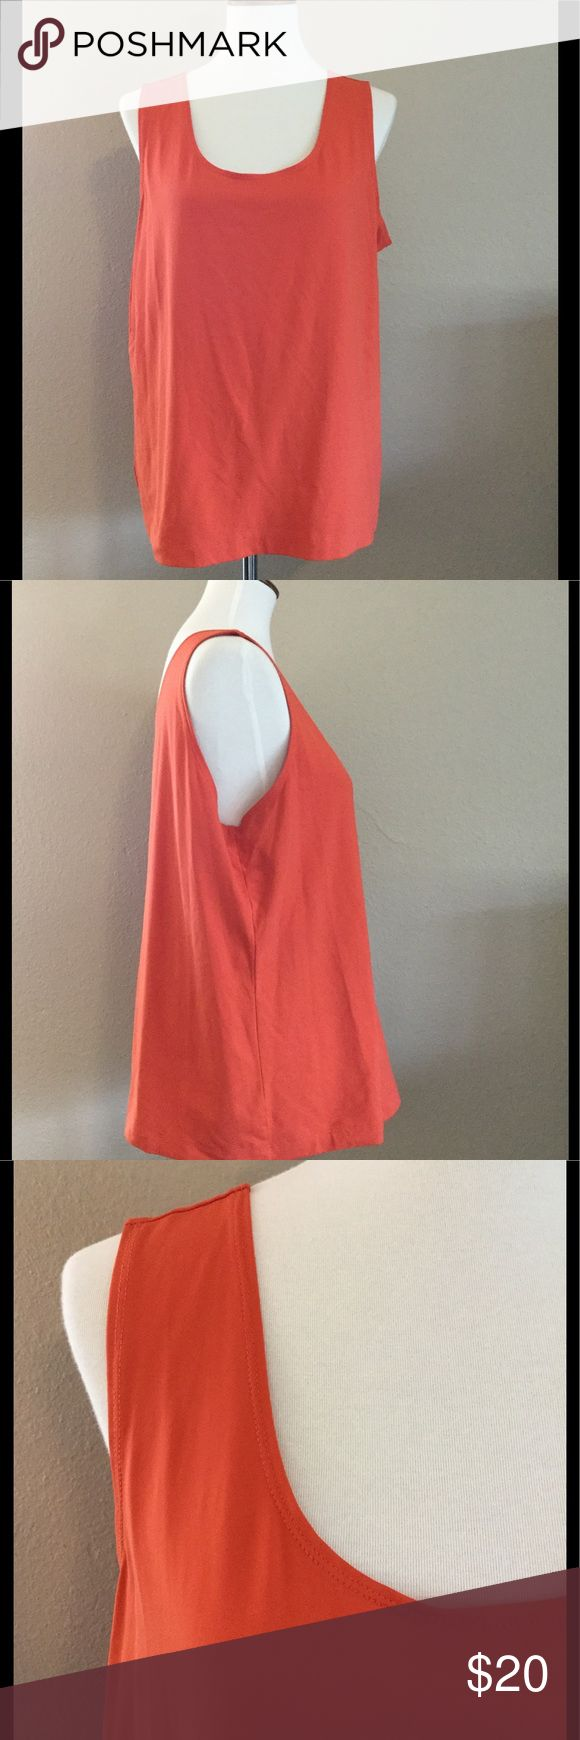 Chico's SZ 3 (XL) Orange Stretchy Cami / Tank Top Women's Chico's orange cami / sleeveless stretchy top size 3. Size 3 is equivalent to size XL top. Top is a great layering piece under cardigans or blazers. In like- new condition.   Fast shipping - same or next business day. Thanks!   Measurements Armpit to armpit: 21 inches  Length: 25 inches Chico's Tops Tank Tops